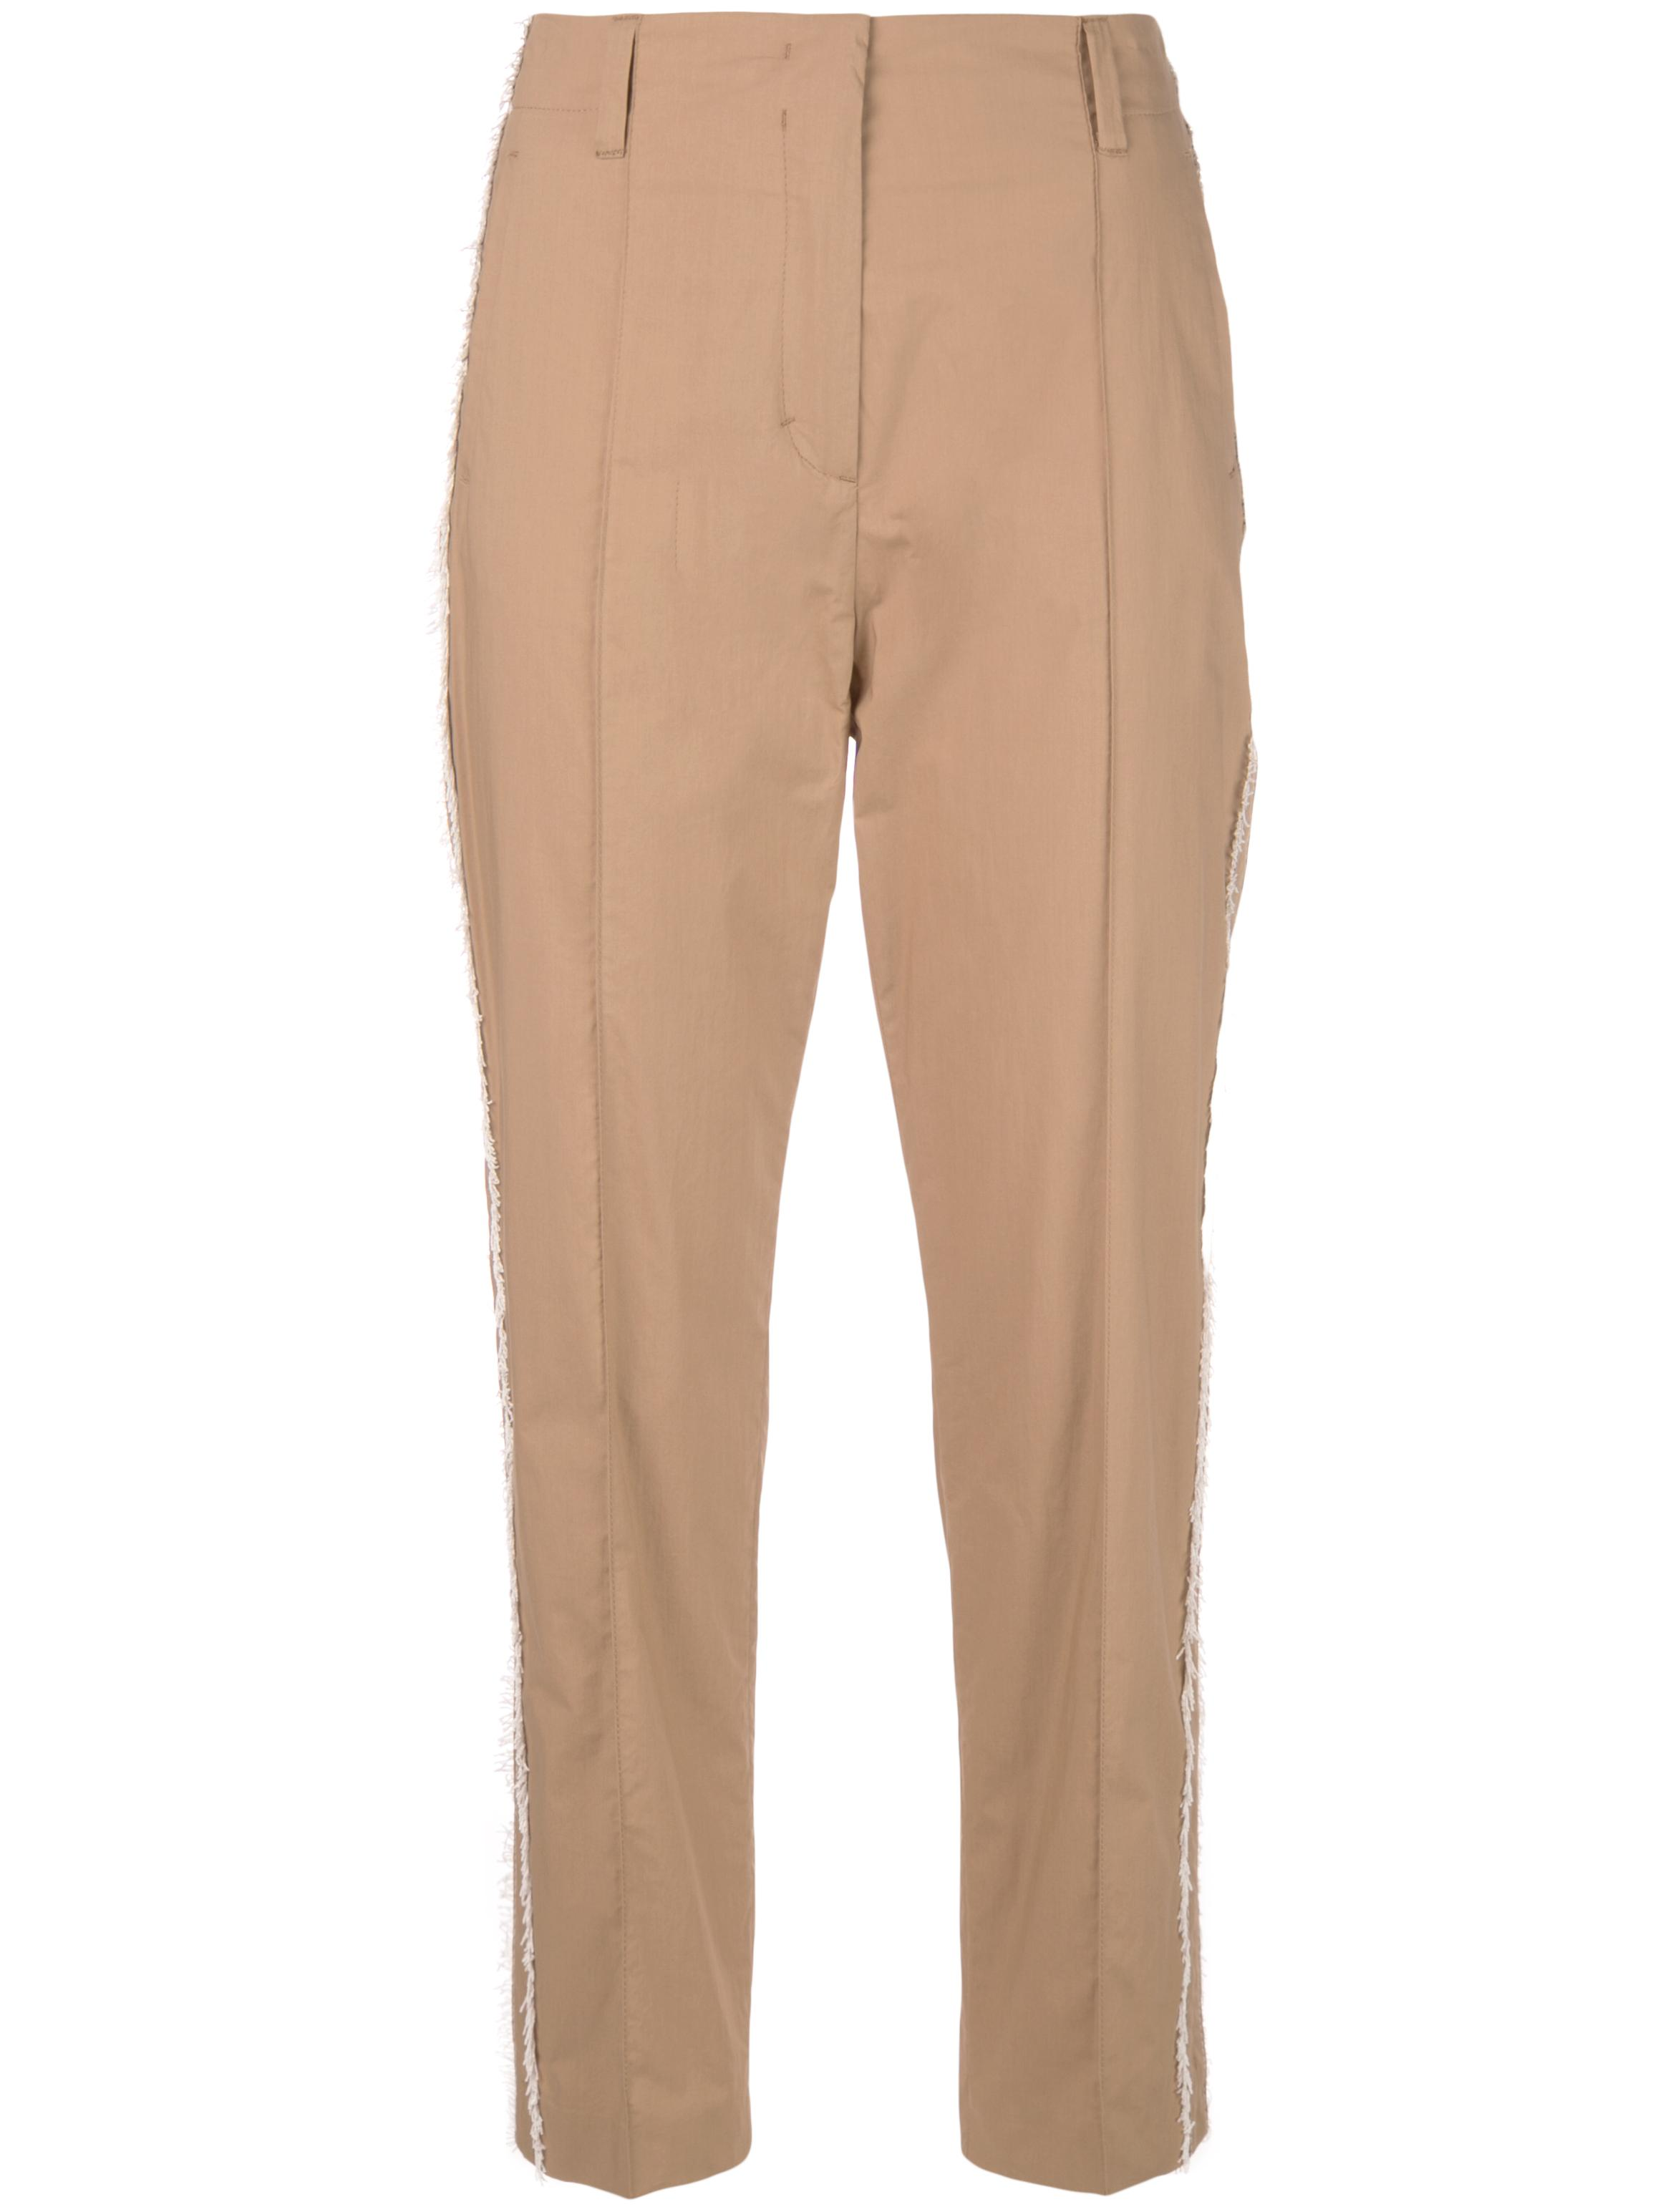 Papertouch Ease Semi Loose Fit Pants Item # 191-342403